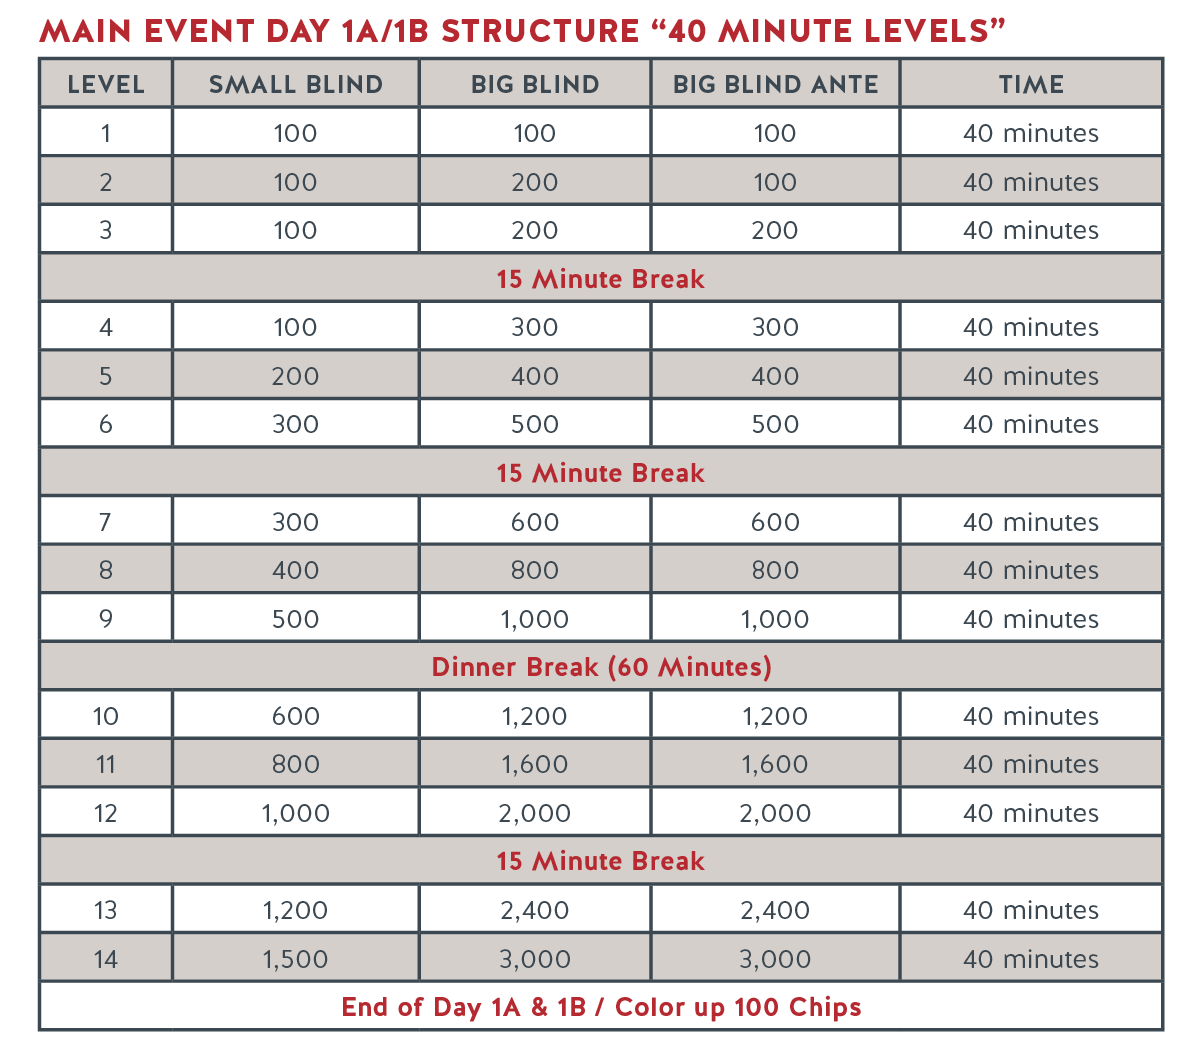 Run It Up Structure - Main Event Day 1A:1B_R1.png